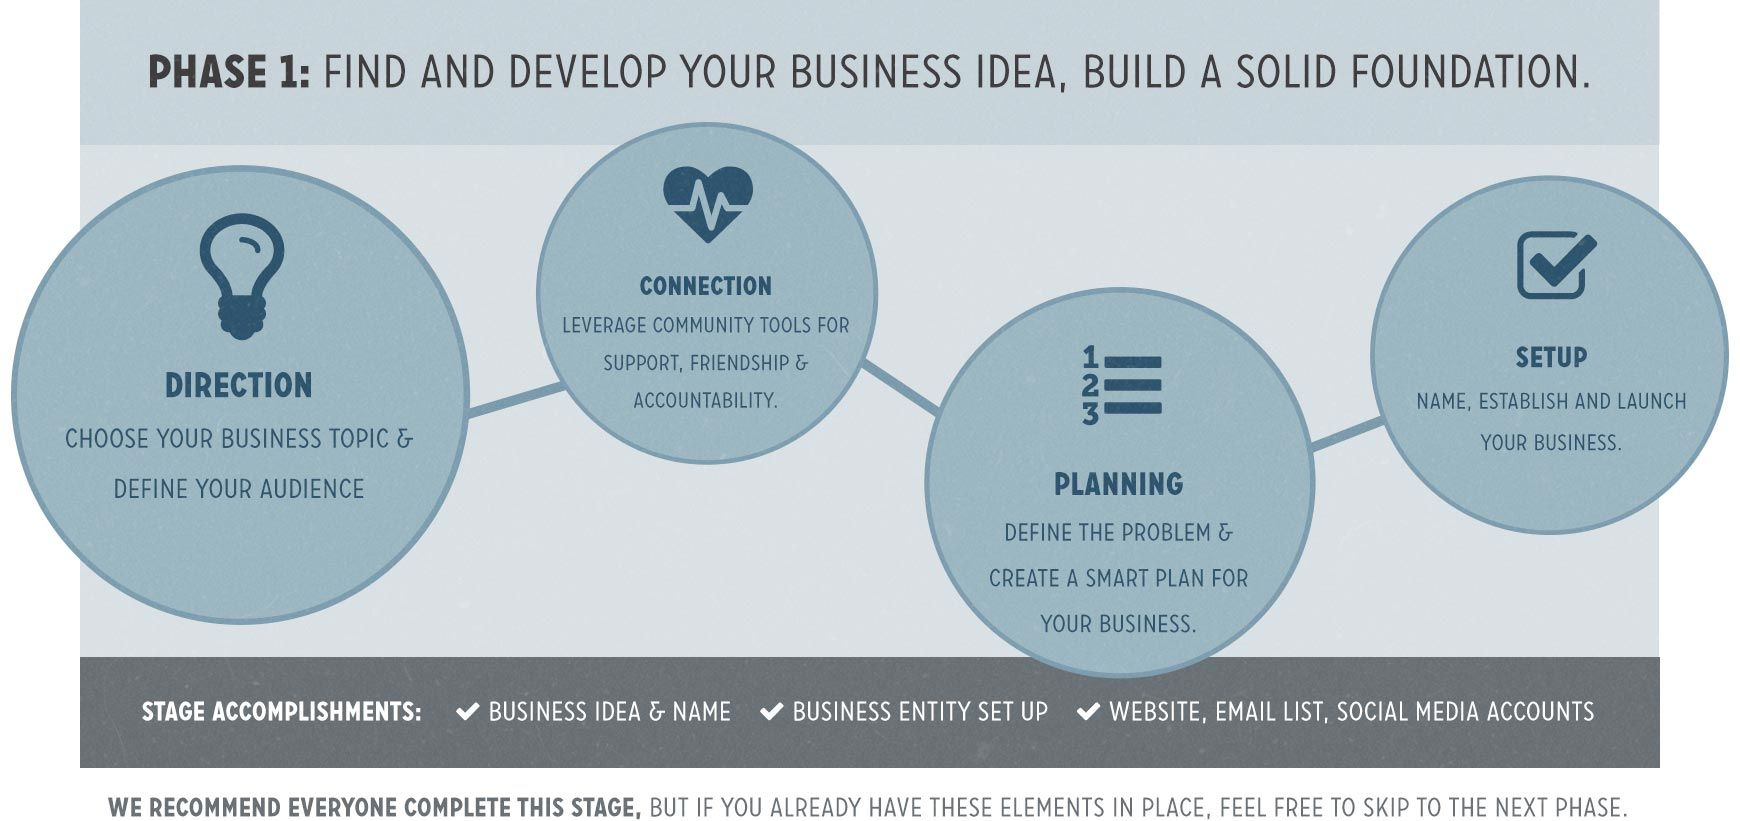 Phase 1 of the Fizzle Small Business Roadmap, direction